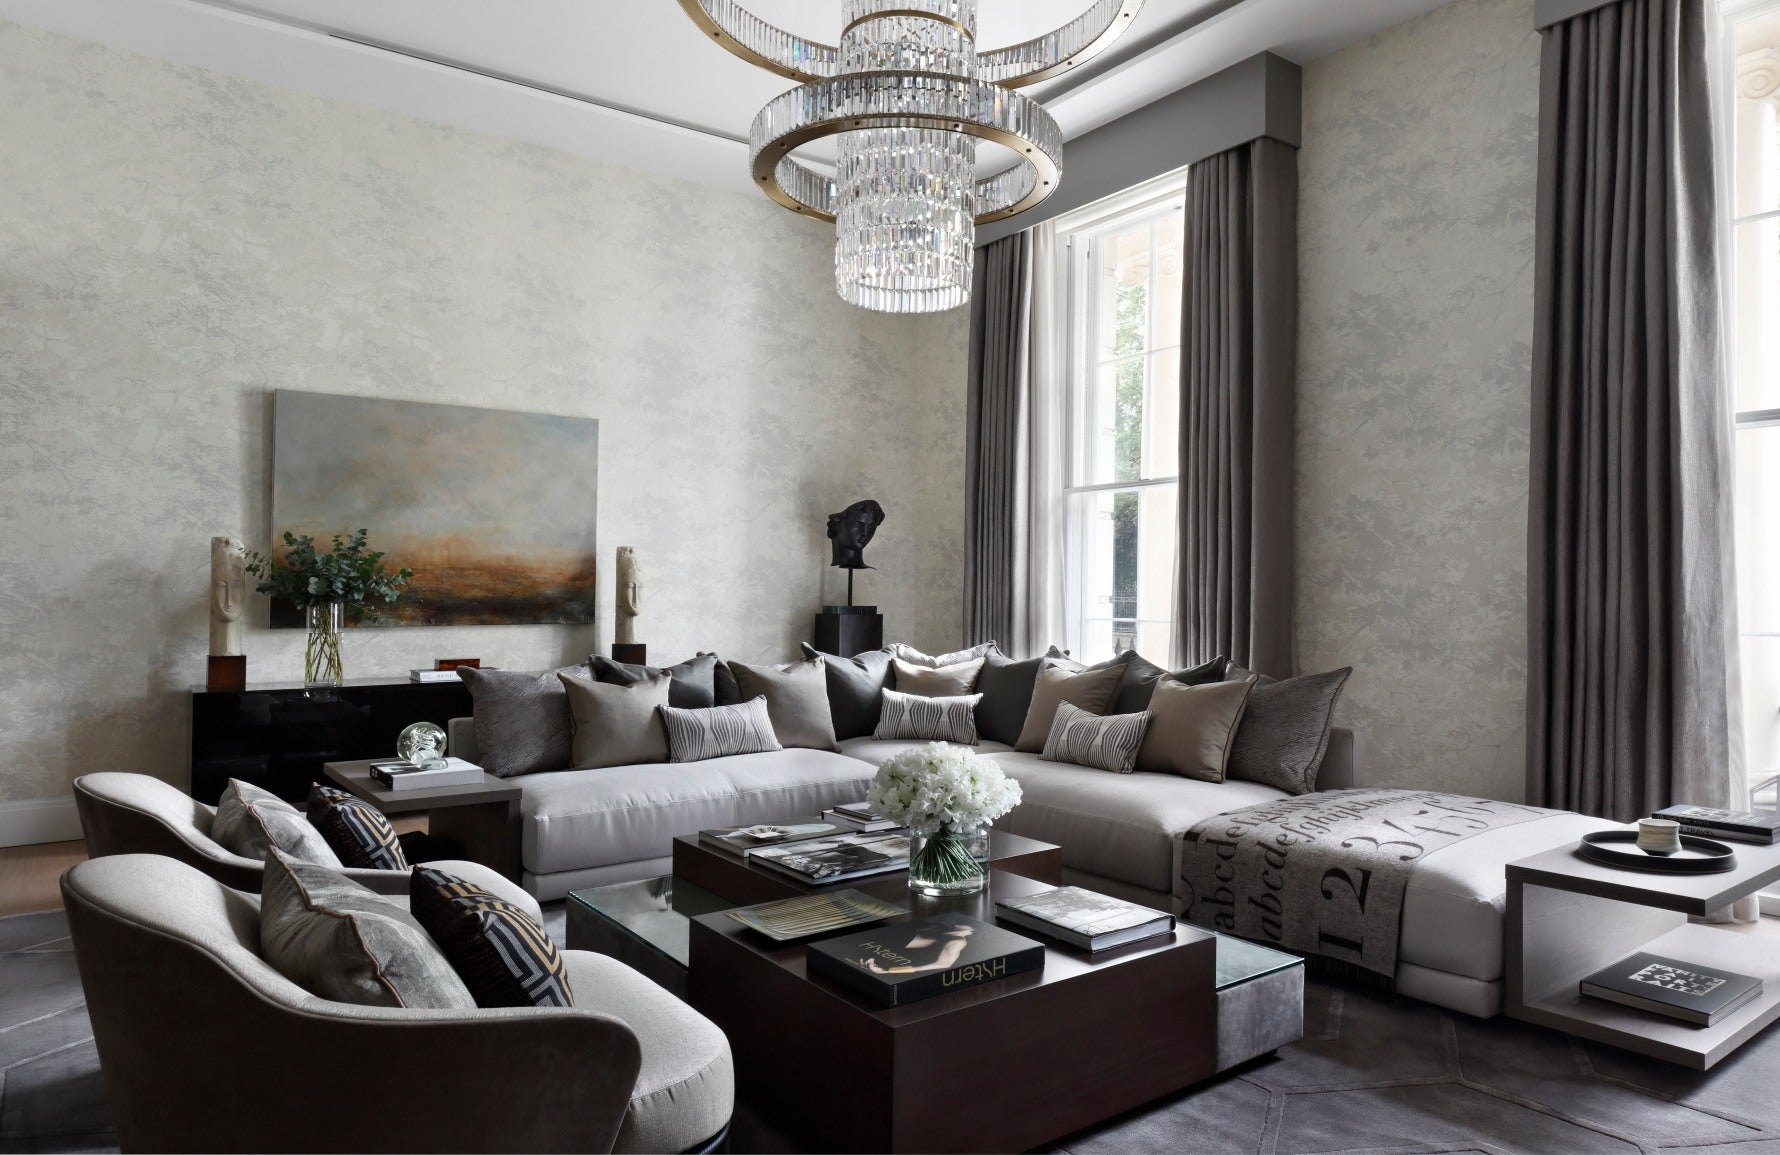 How To Decorate A Large Living Room | Interior by Oliver Burns | Read more in the LuxDeco.com Style Guide